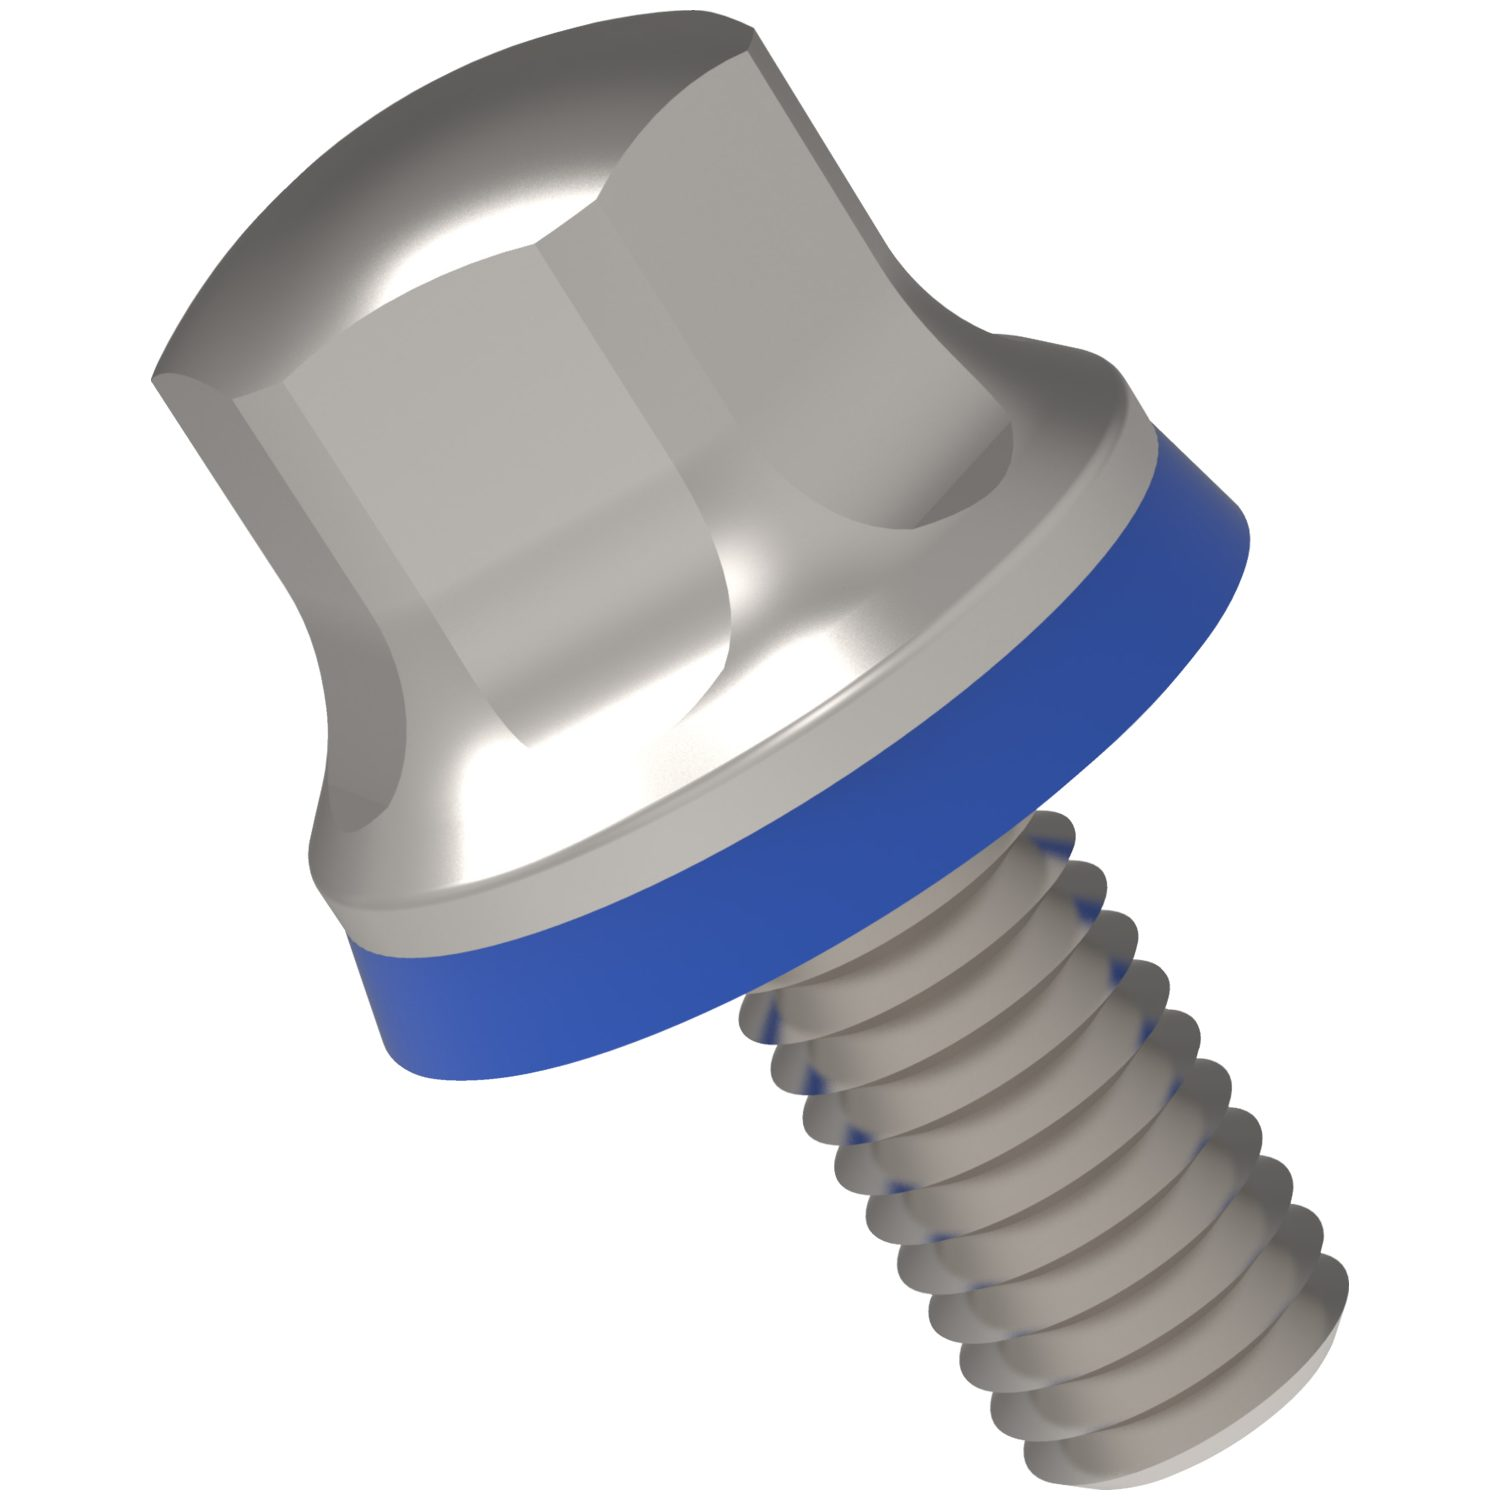 Automotion Hygienic Thumb Screws